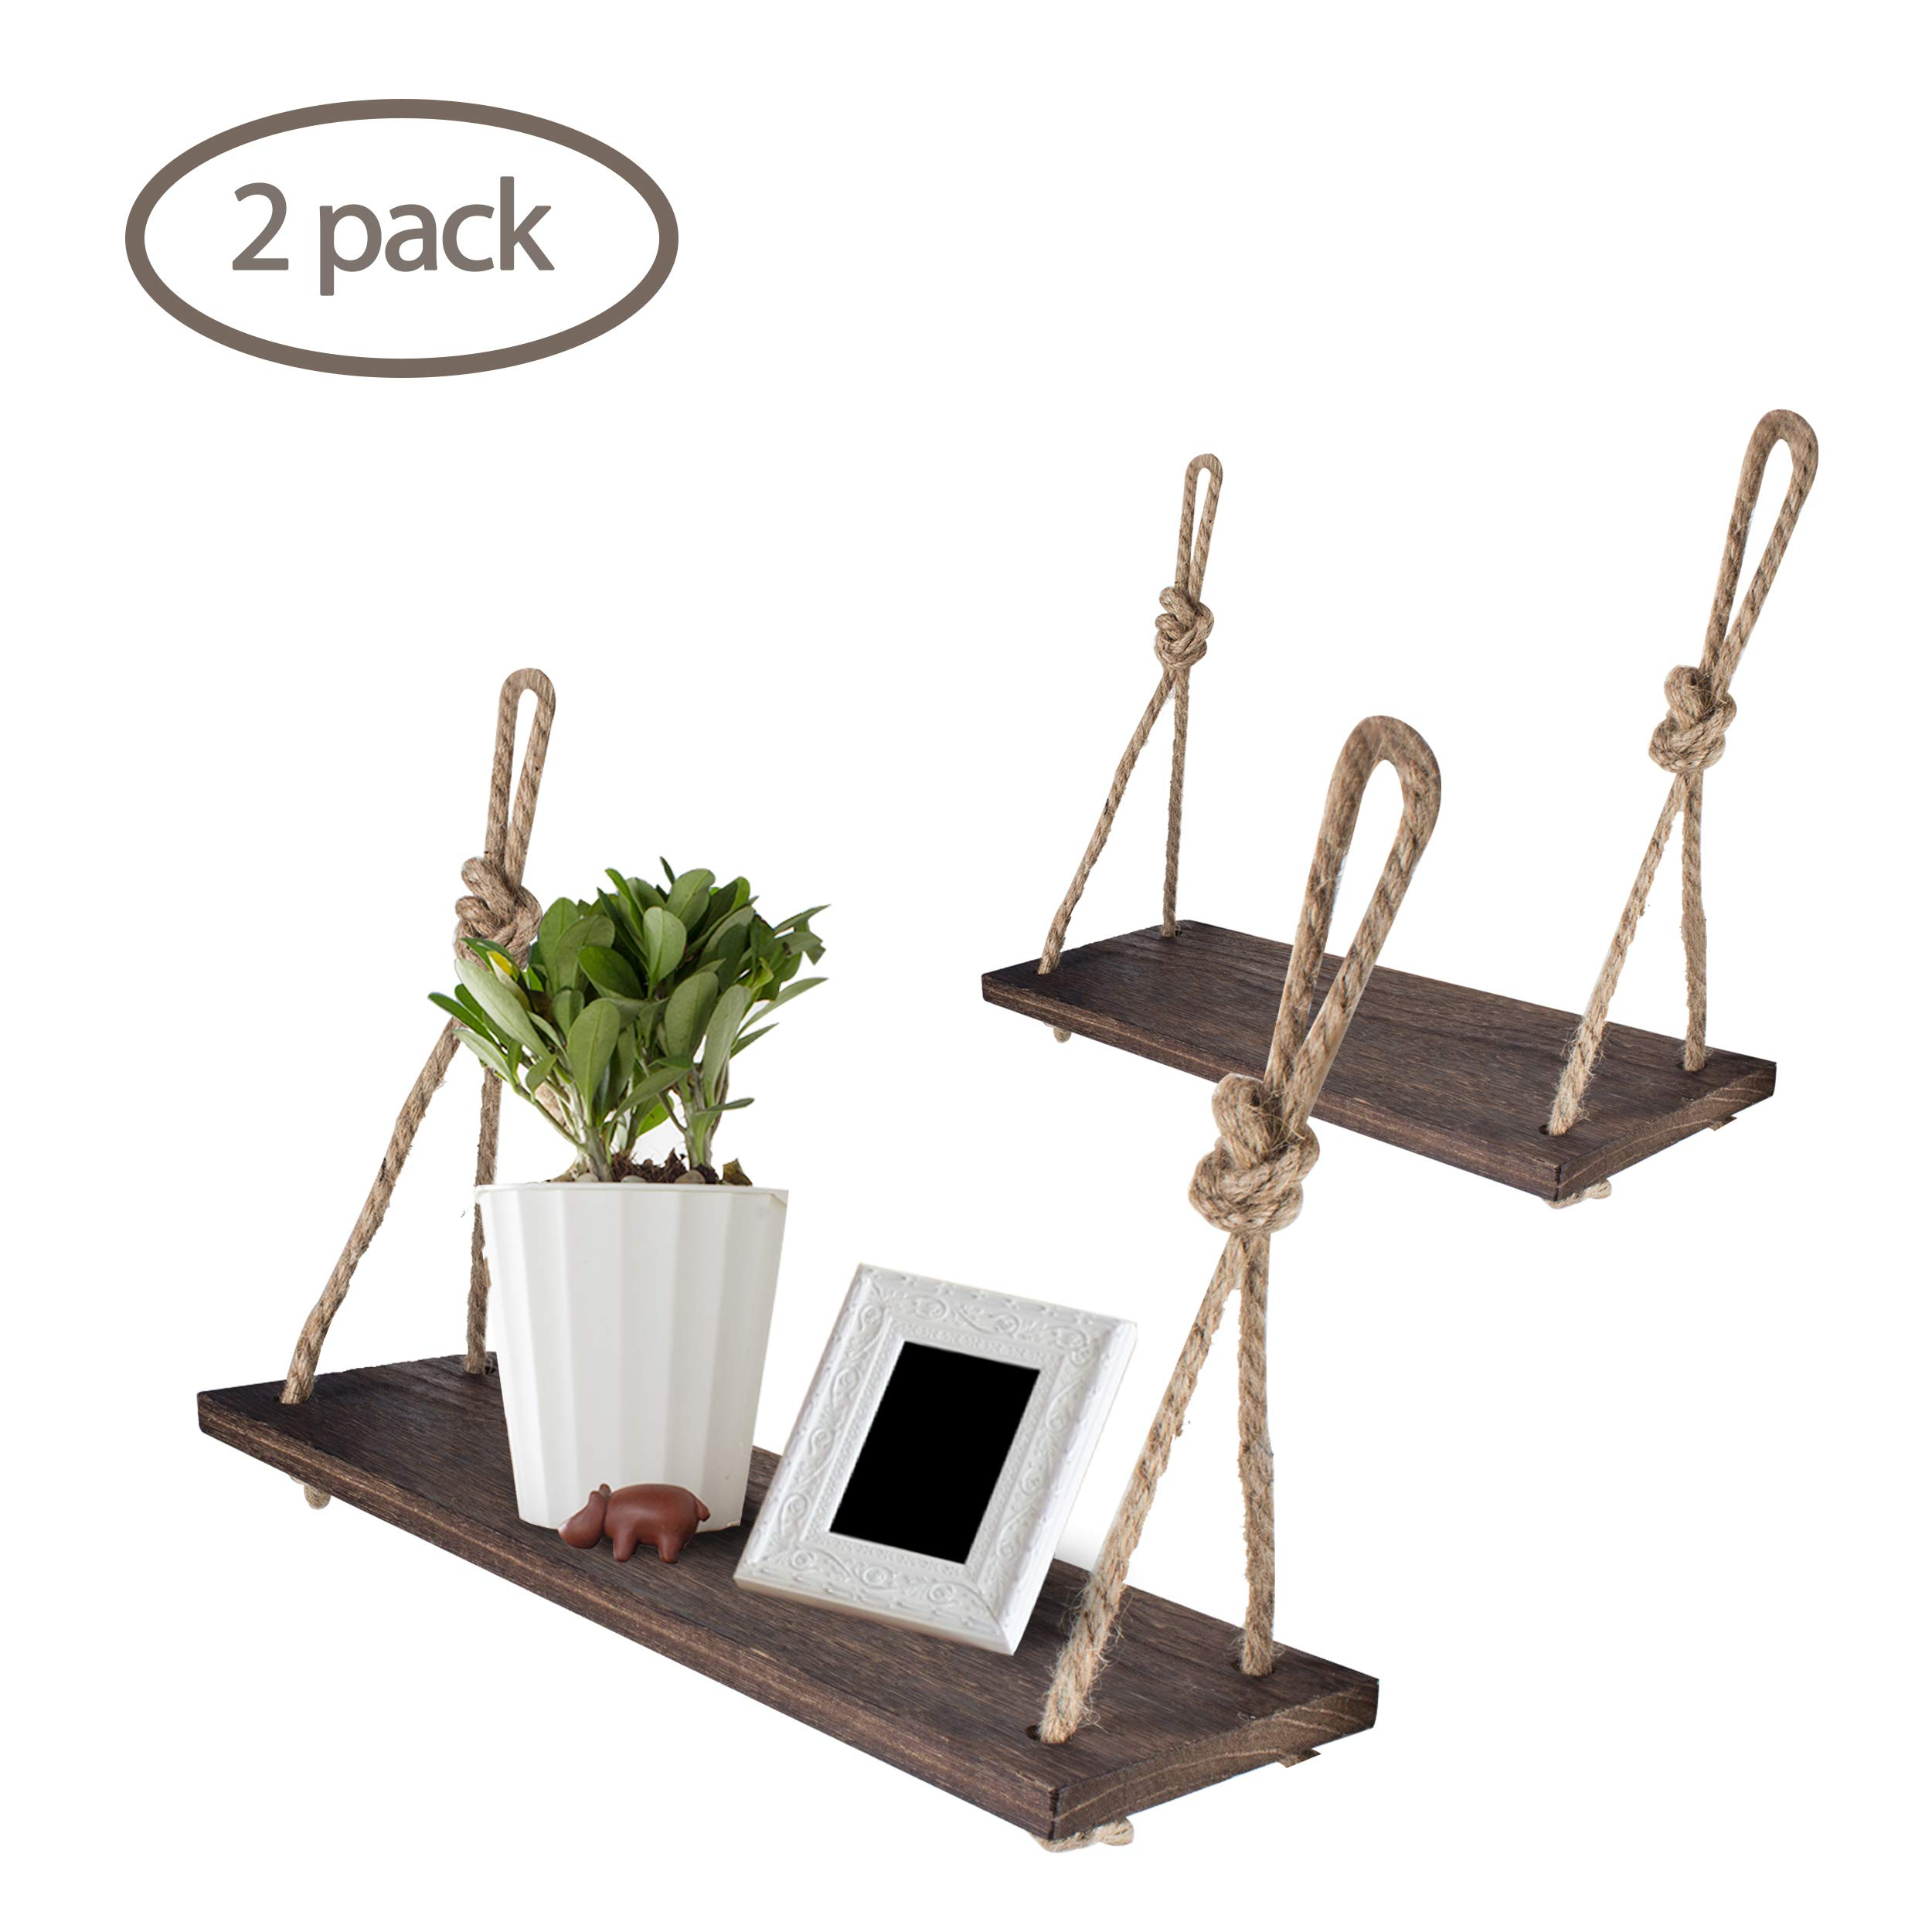 Yankario Rope Hanging Floating Shelves, Rustic Wood Wall Decor Swing Shelf with 4 Hooks, Pack of 2 by Yankario